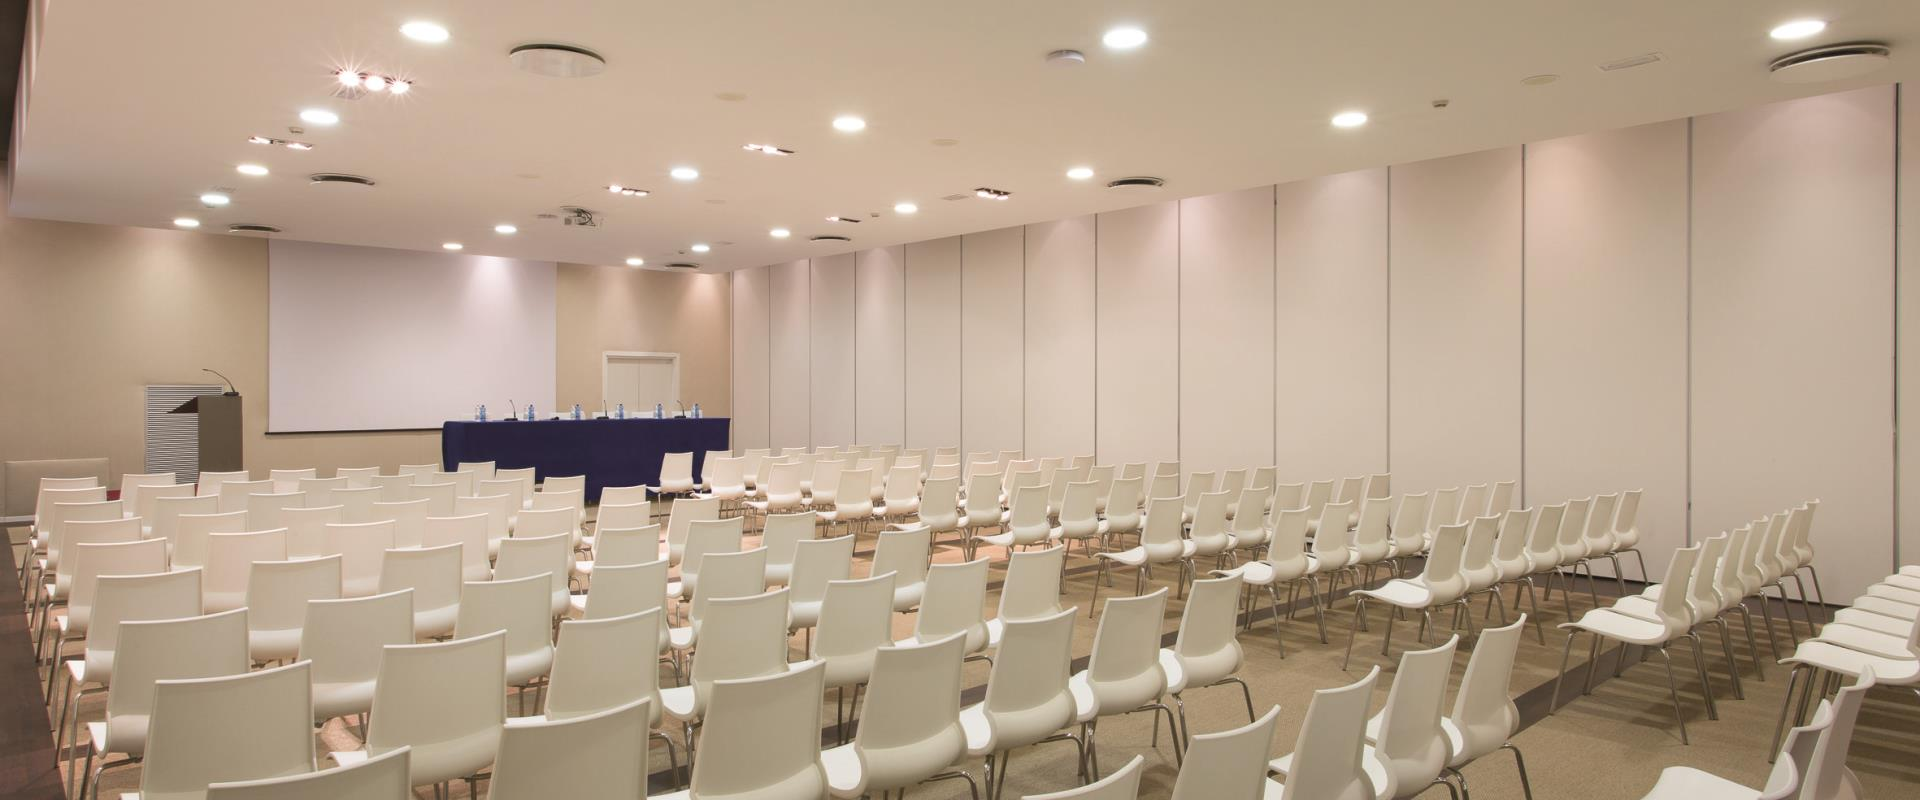 Meeting Room-Best Western Plus Tower Hotel